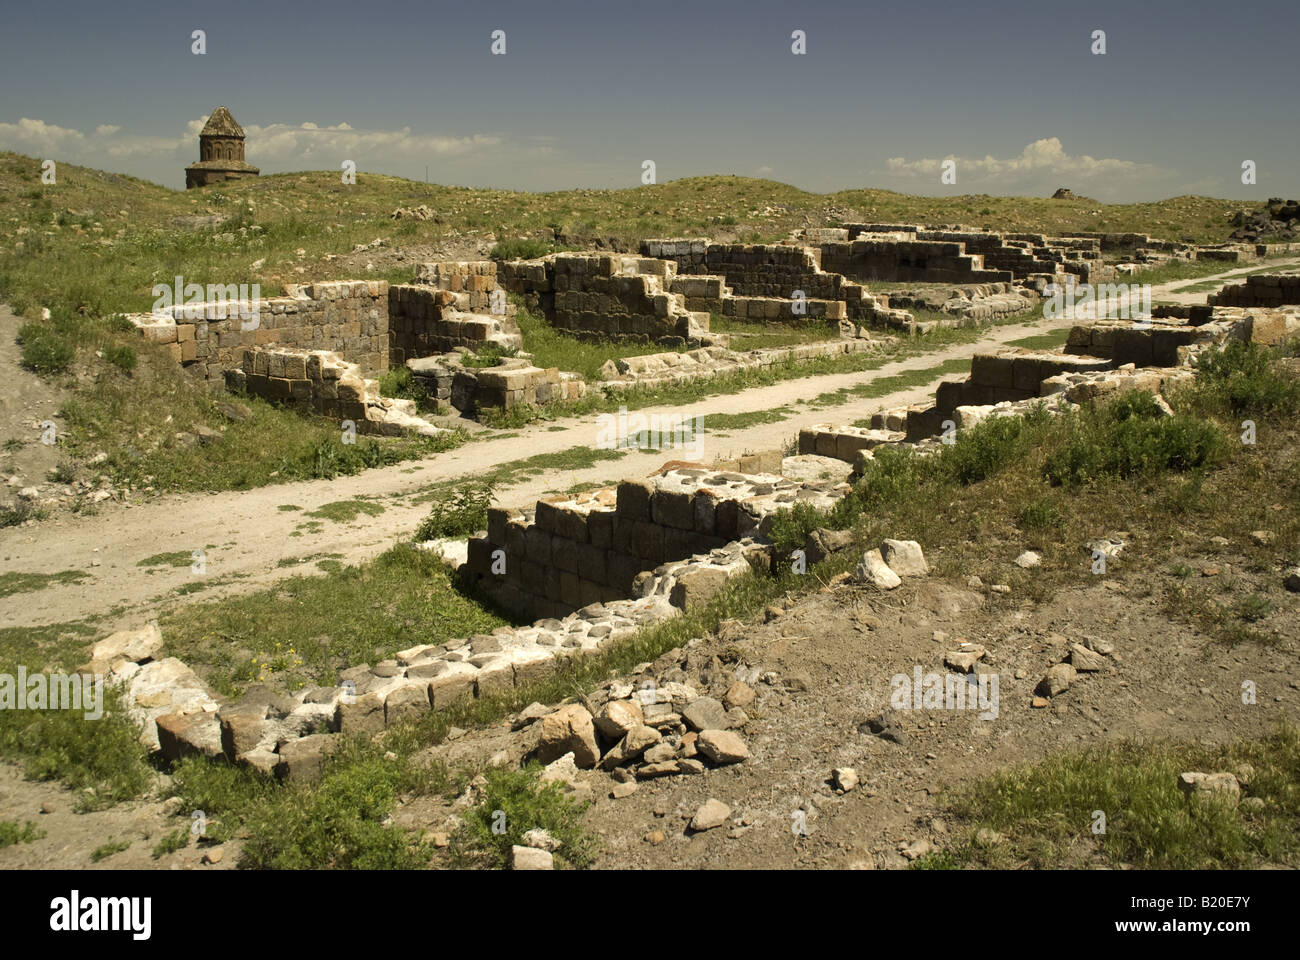 Remains of street of shops at Ani, ruined capital of Armenian Kingdom, on eastern Turkey border with Armenia - Stock Image